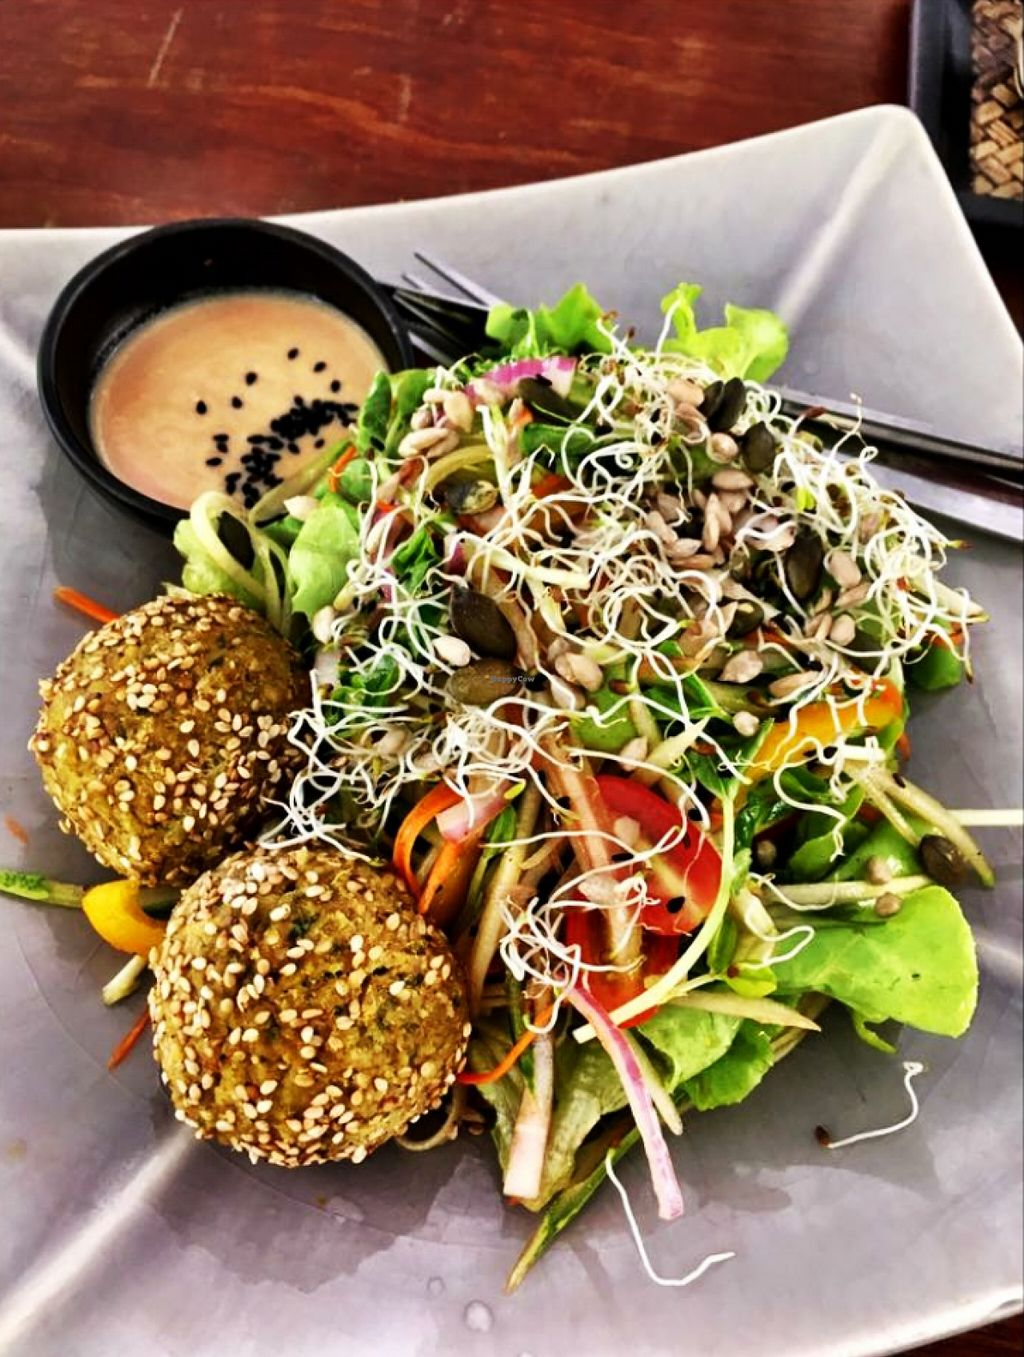 """Photo of Greenlight Cafe & Bar  by <a href=""""/members/profile/Greenlight%20Cafe"""">Greenlight Cafe</a> <br/>Falafel Salad <br/> May 7, 2016  - <a href='/contact/abuse/image/73356/147977'>Report</a>"""